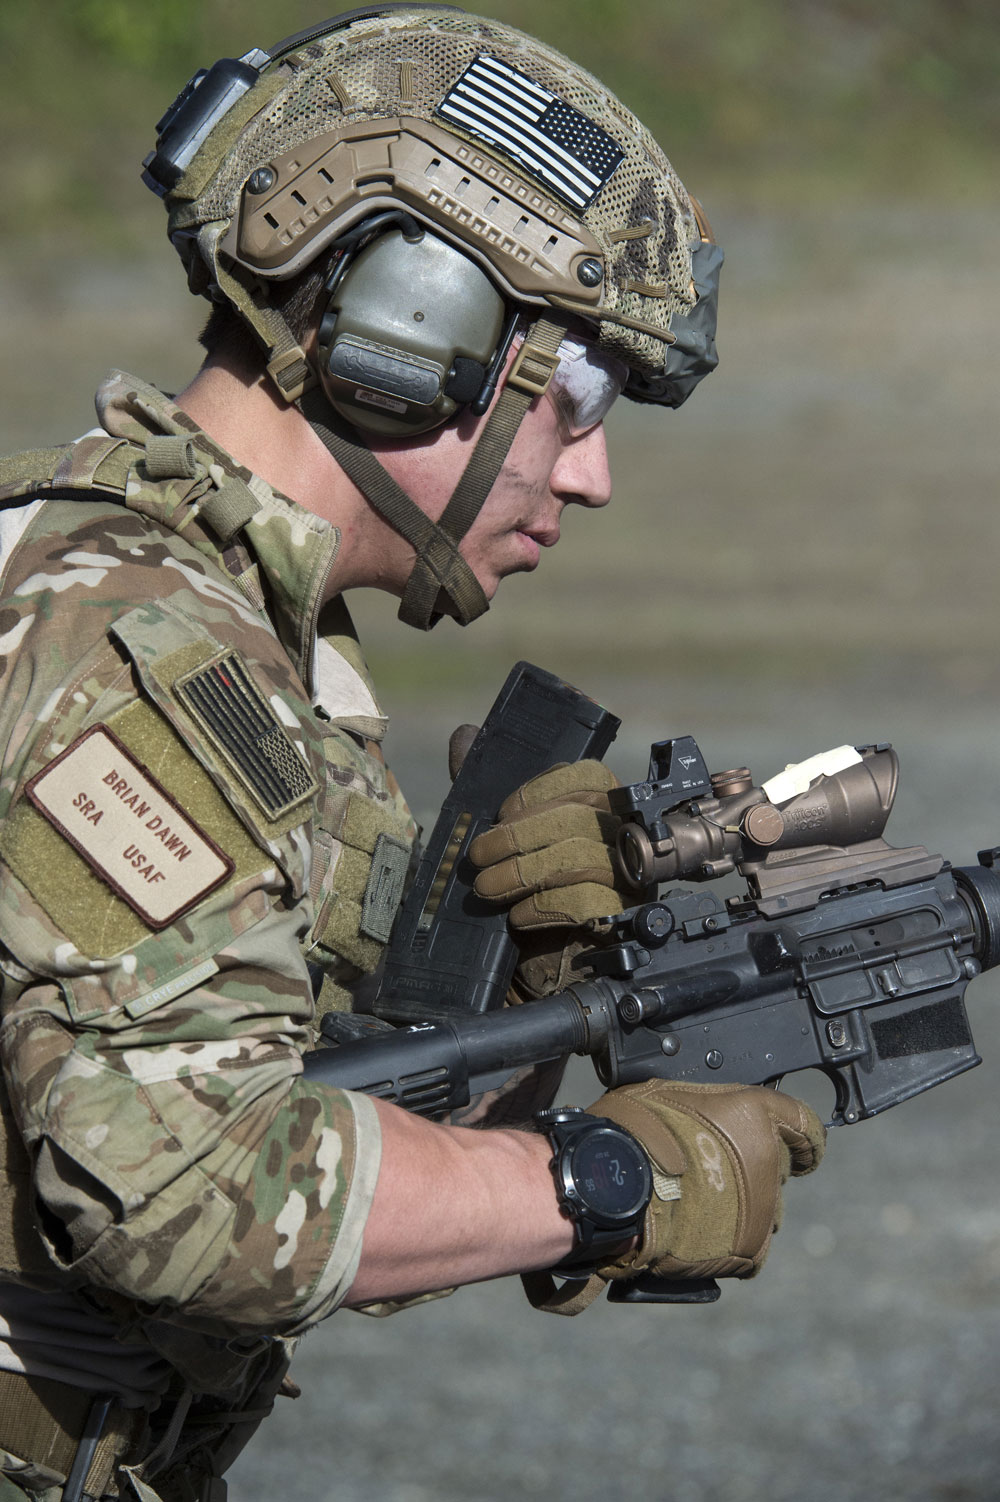 U.S. Air Force Senior Airman Brian Dawn, a tactical air control party specialist assigned to the 3rd Air Support Operations Squadron, examines his M4 carbine while clearing a malfunction during live-fire sustainment training at Joint Base Elmendorf-Richardson, Alaska.